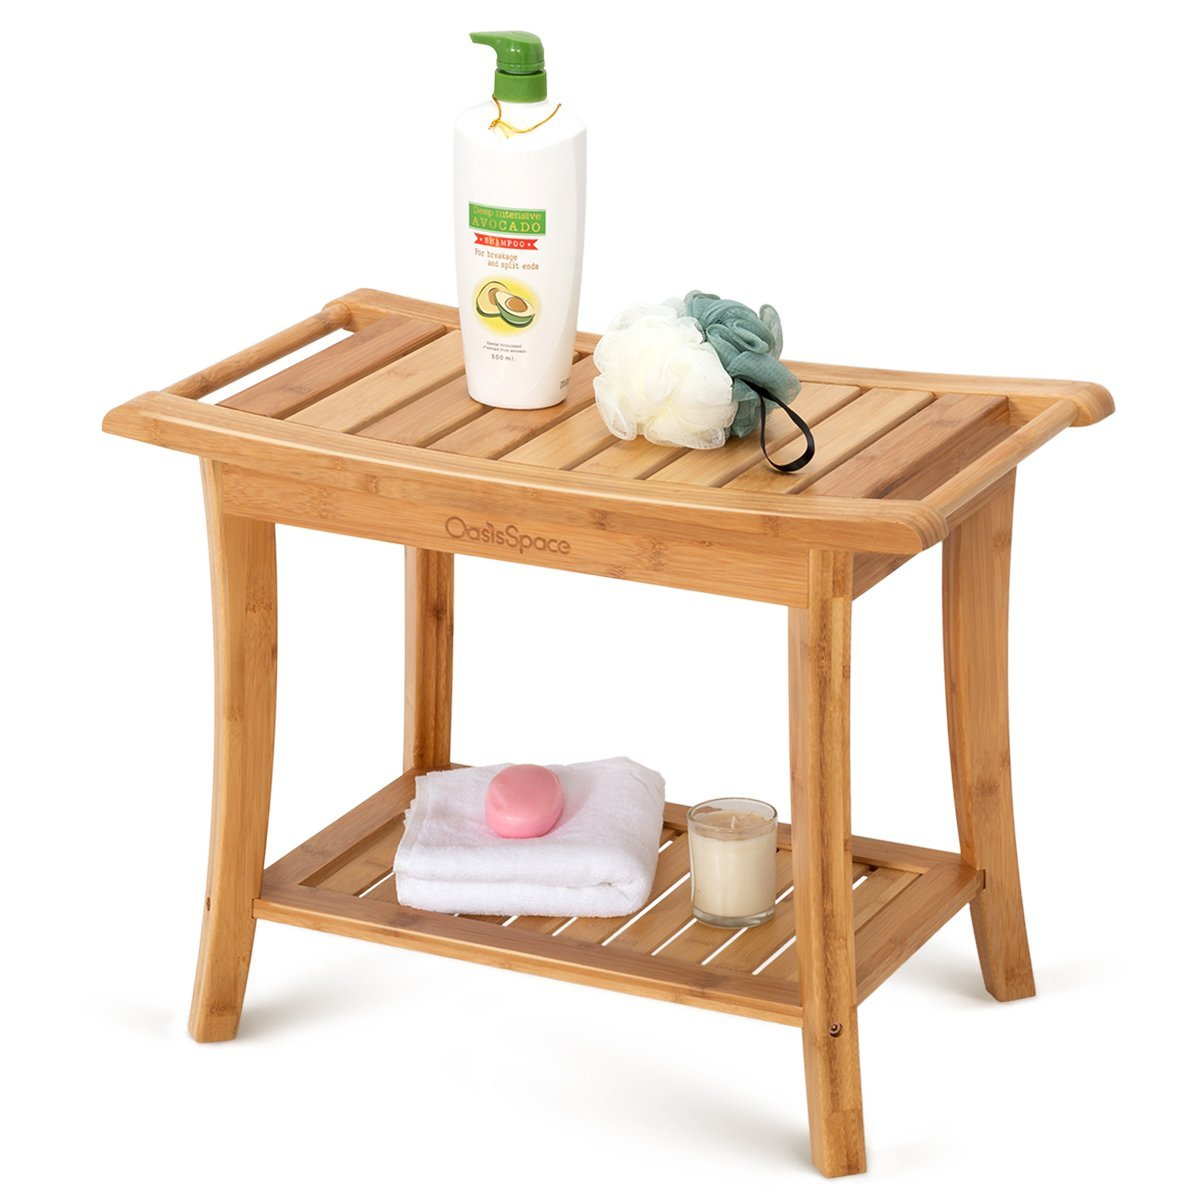 OasisSpace Bamboo Shower Bench, 24'' Waterproof Shower Chair with Storage Shelf, Wood Spa Bath Organizer Seat Stool, Perfect for Indoor or Outdoor